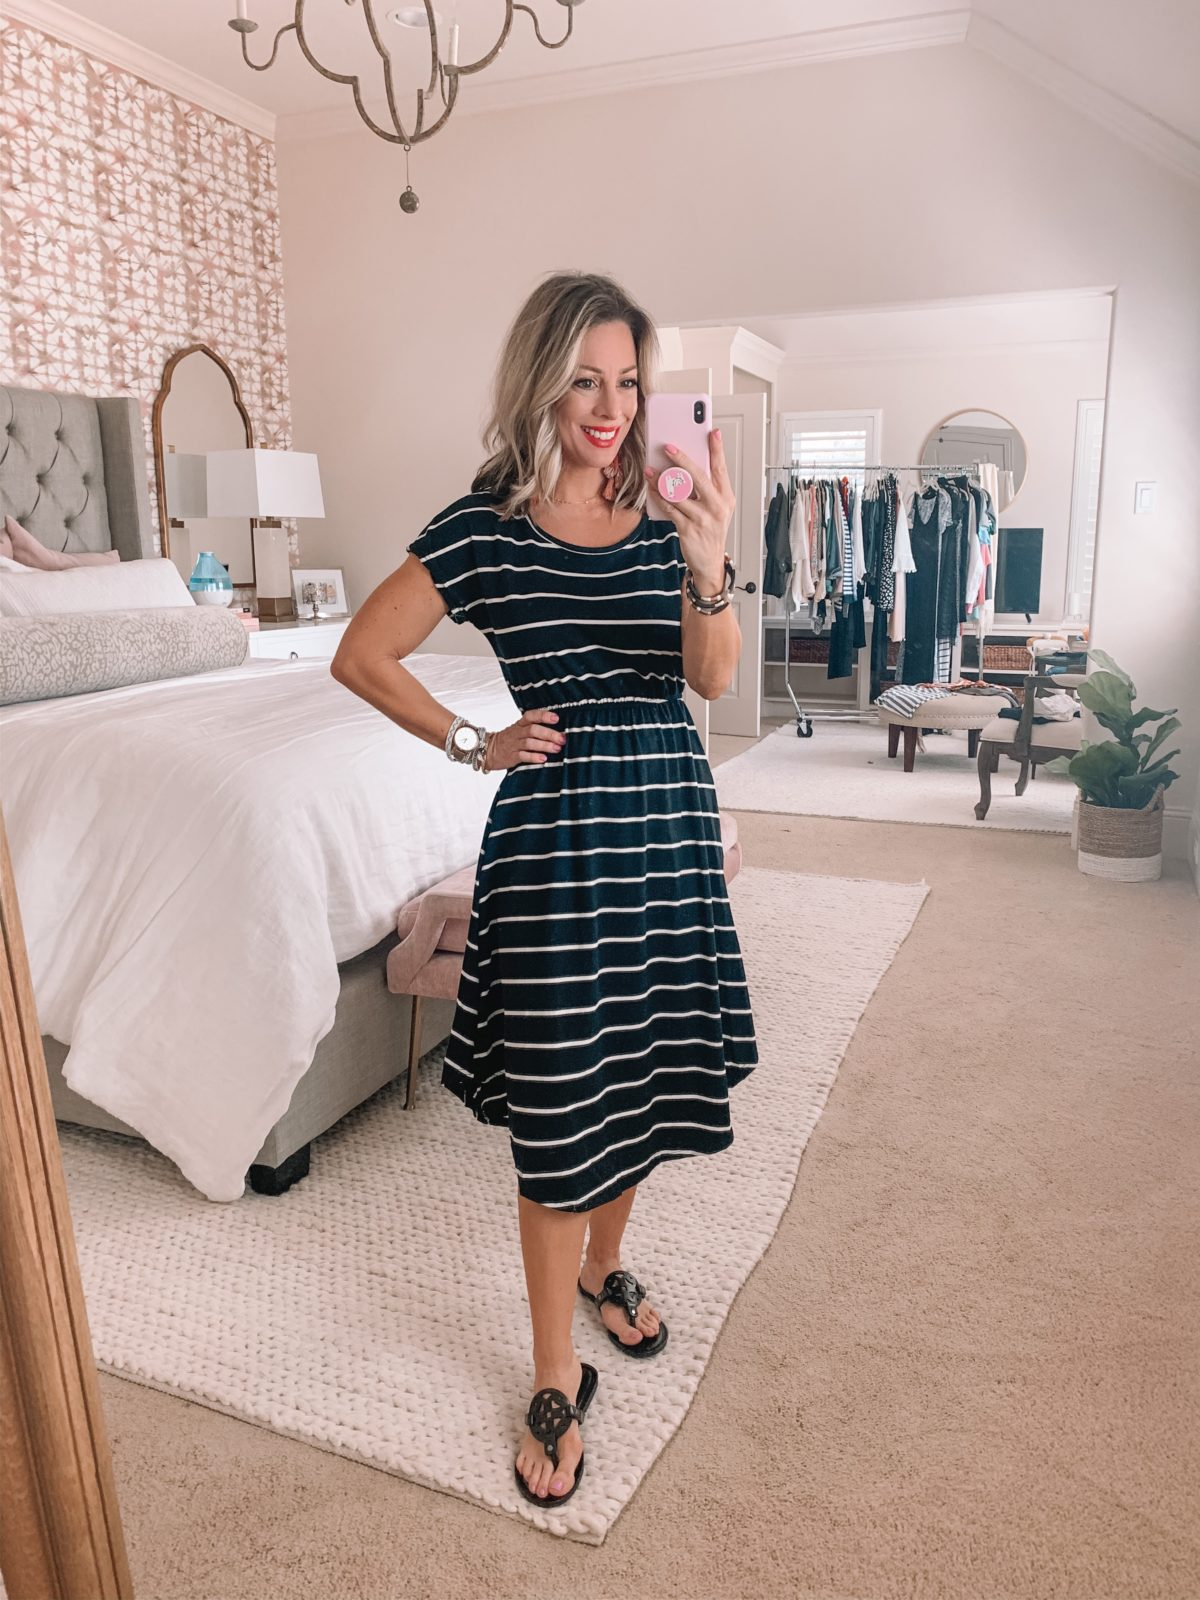 Black and white Stripe tee shirt Dress, Miller Dupe Sandals